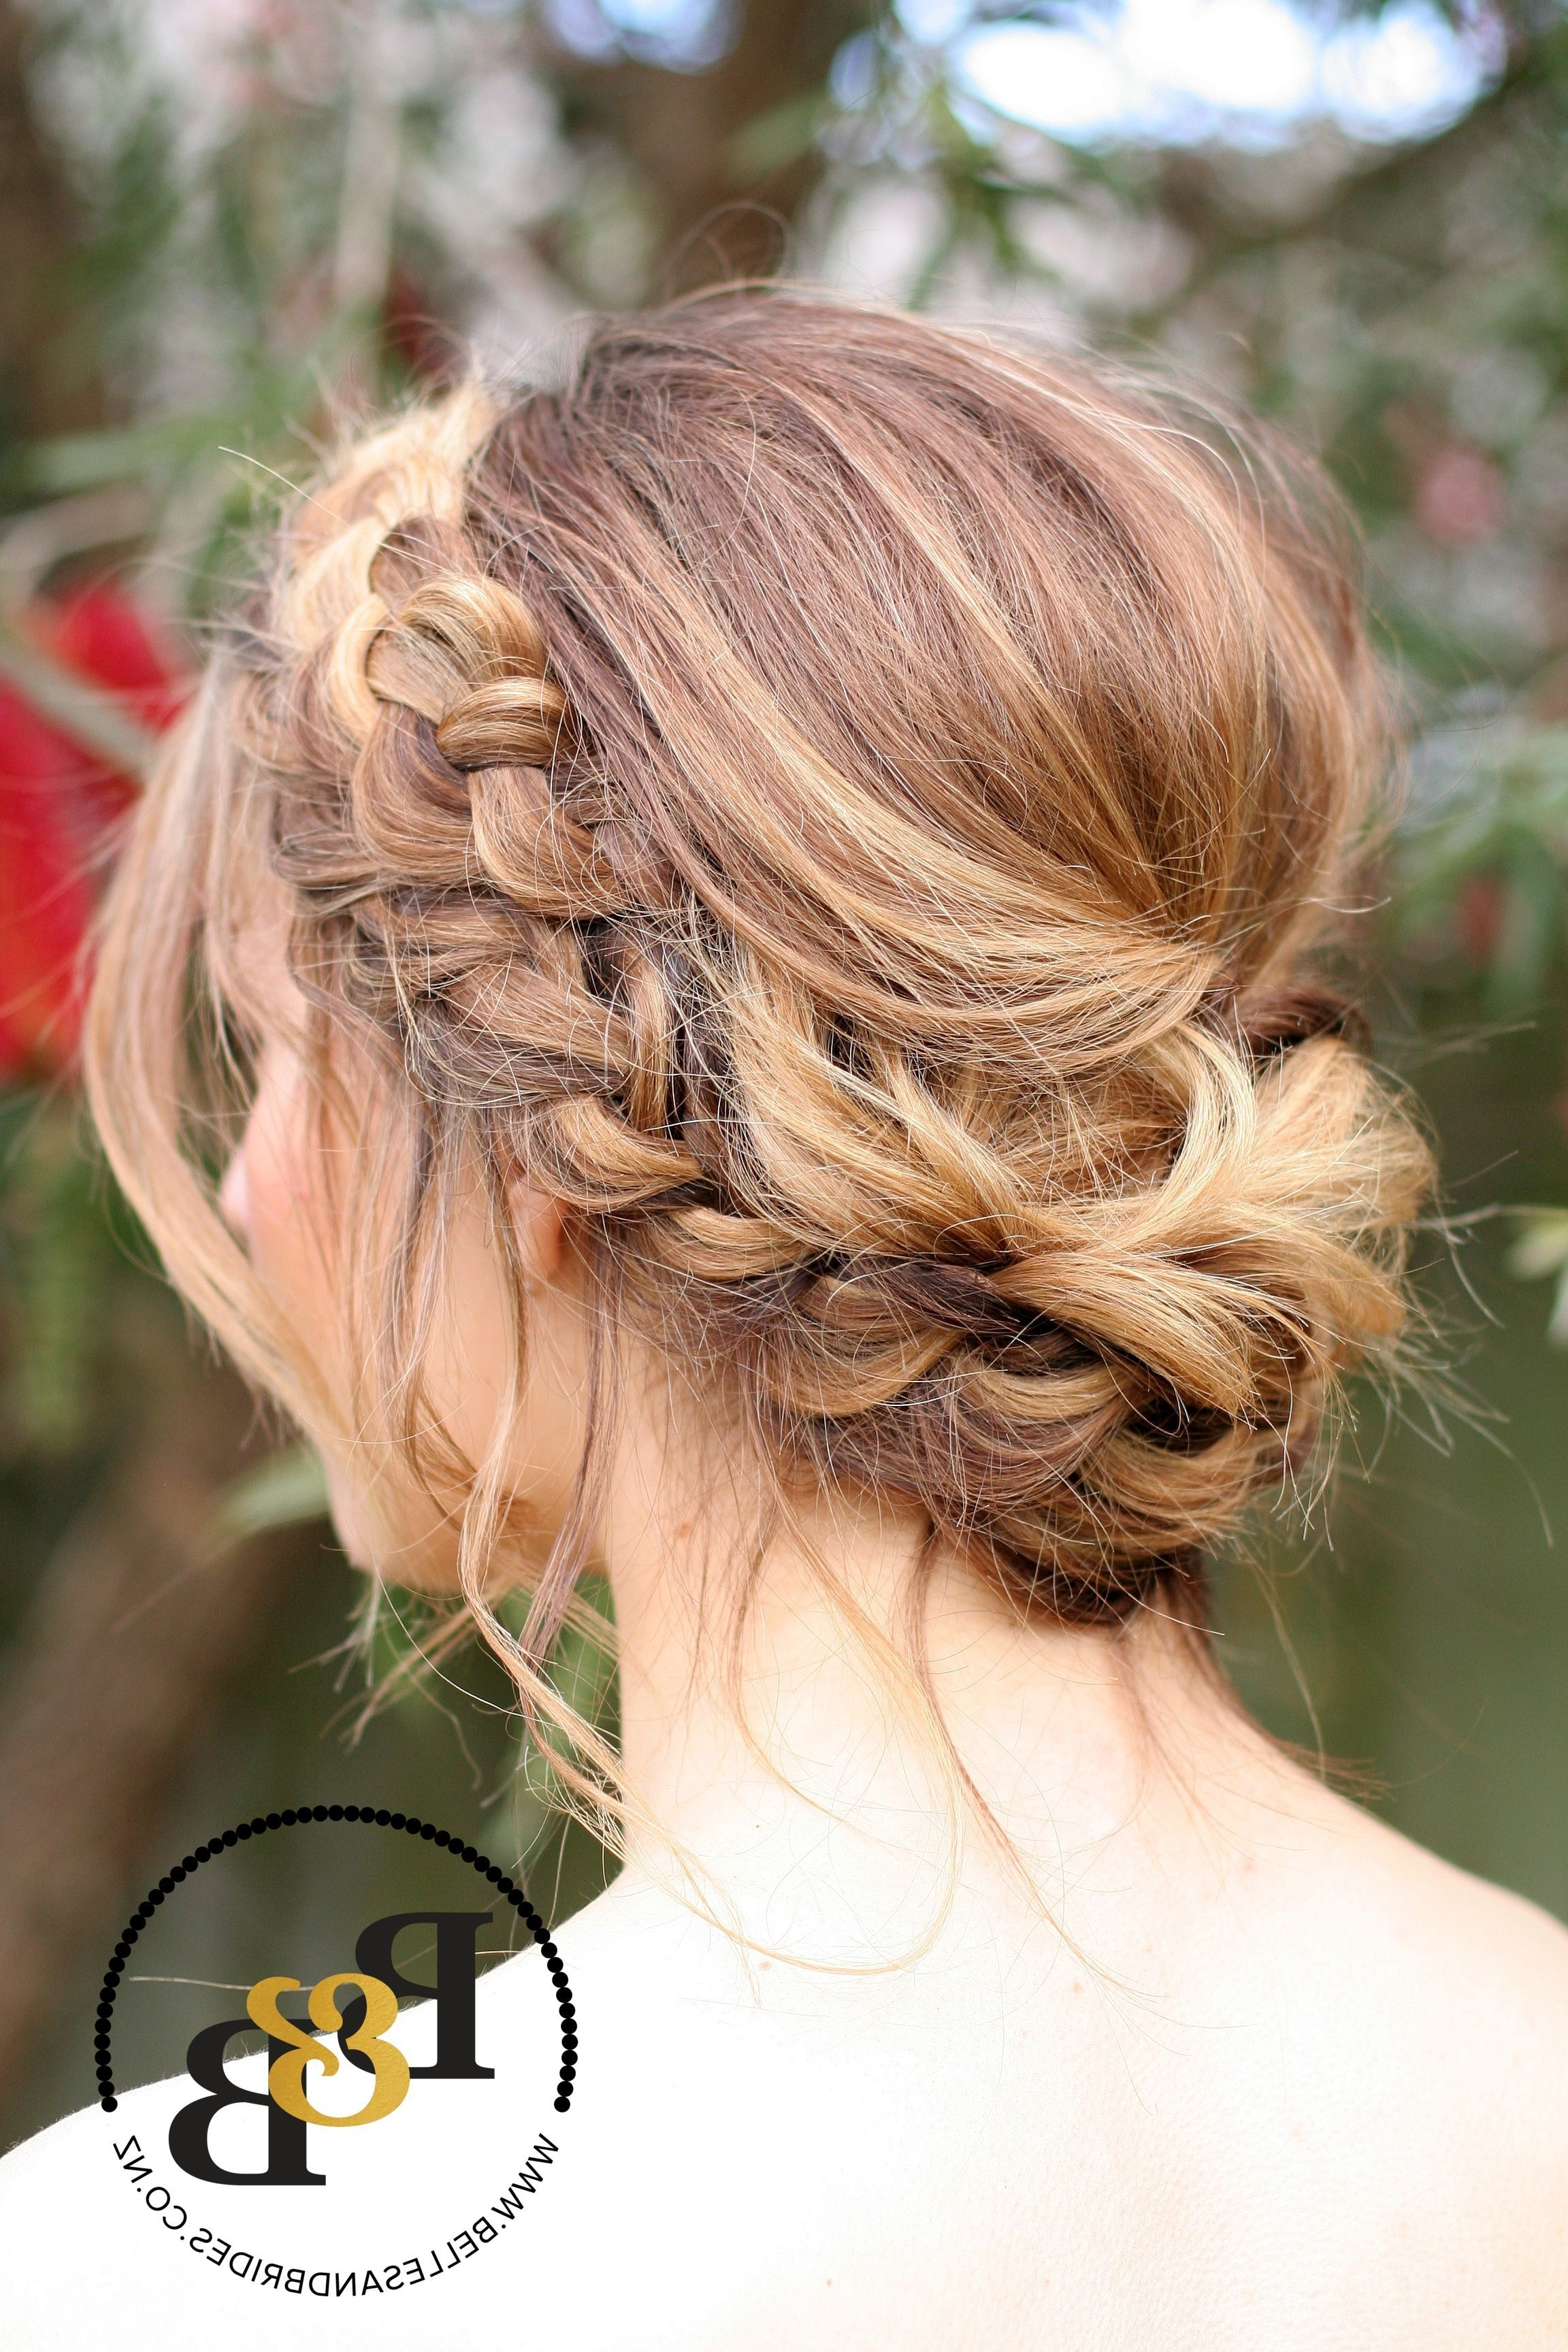 Wedding Hair With Braid / Messy Bridal Updo / Bridesmaids Hair With Regard To Most Current Messy Wedding Hairstyles For Long Hair (View 13 of 15)